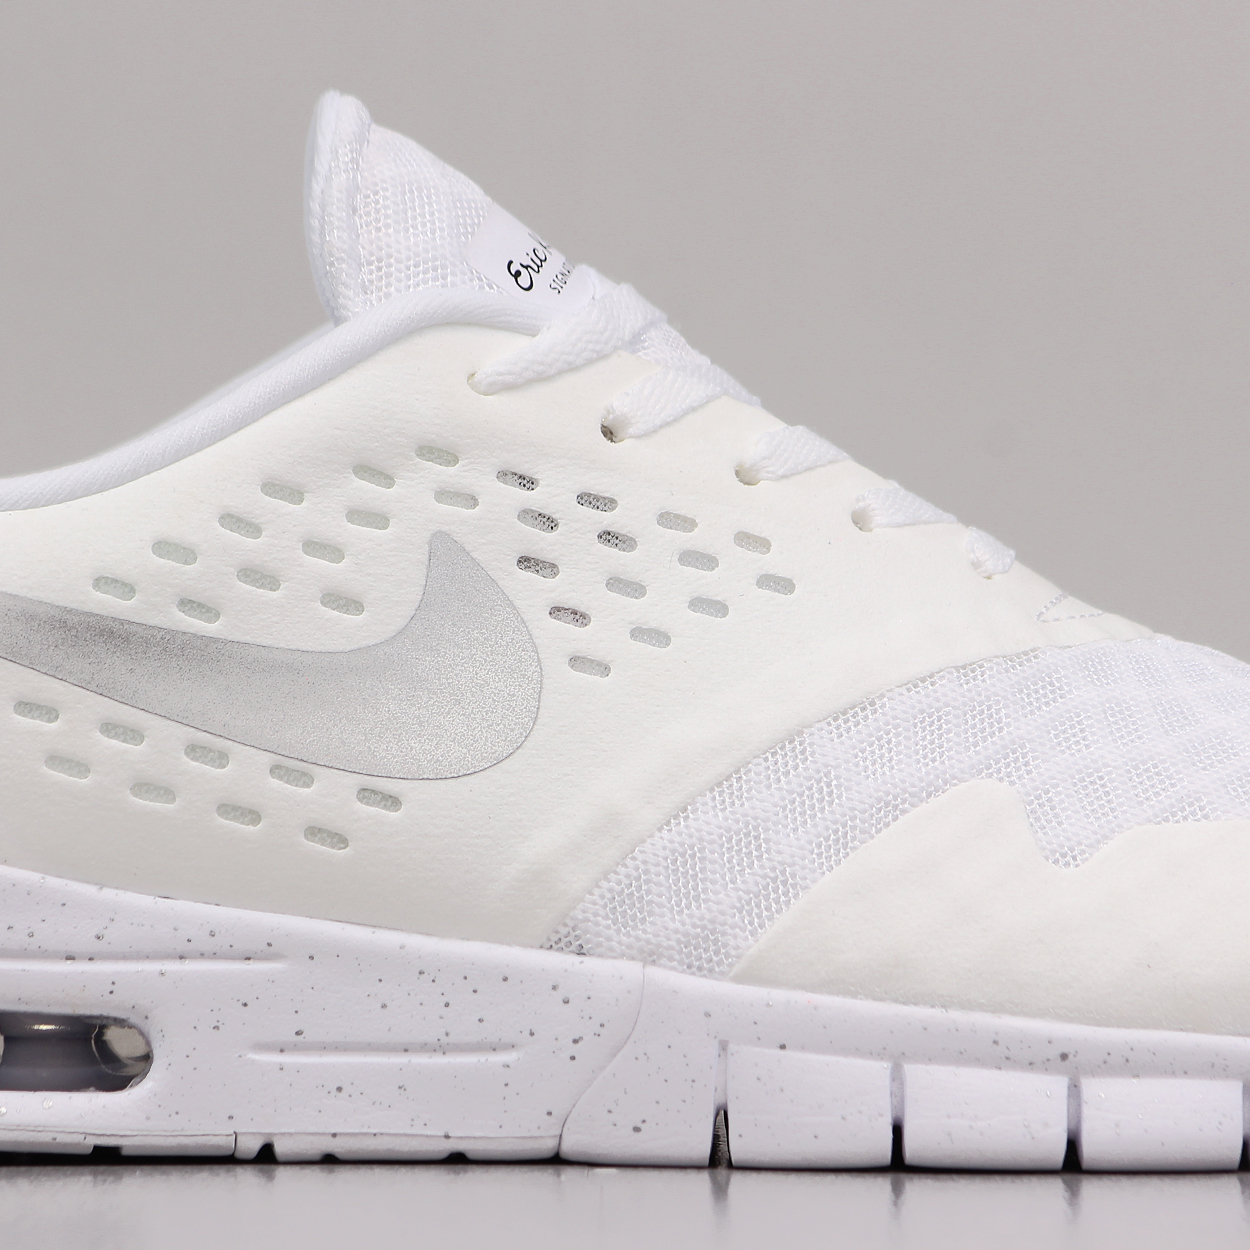 new style 8547c f1671 A fresh white and silver colour way on the signature Eric Koston 2 Max  Shoes from Nike SB